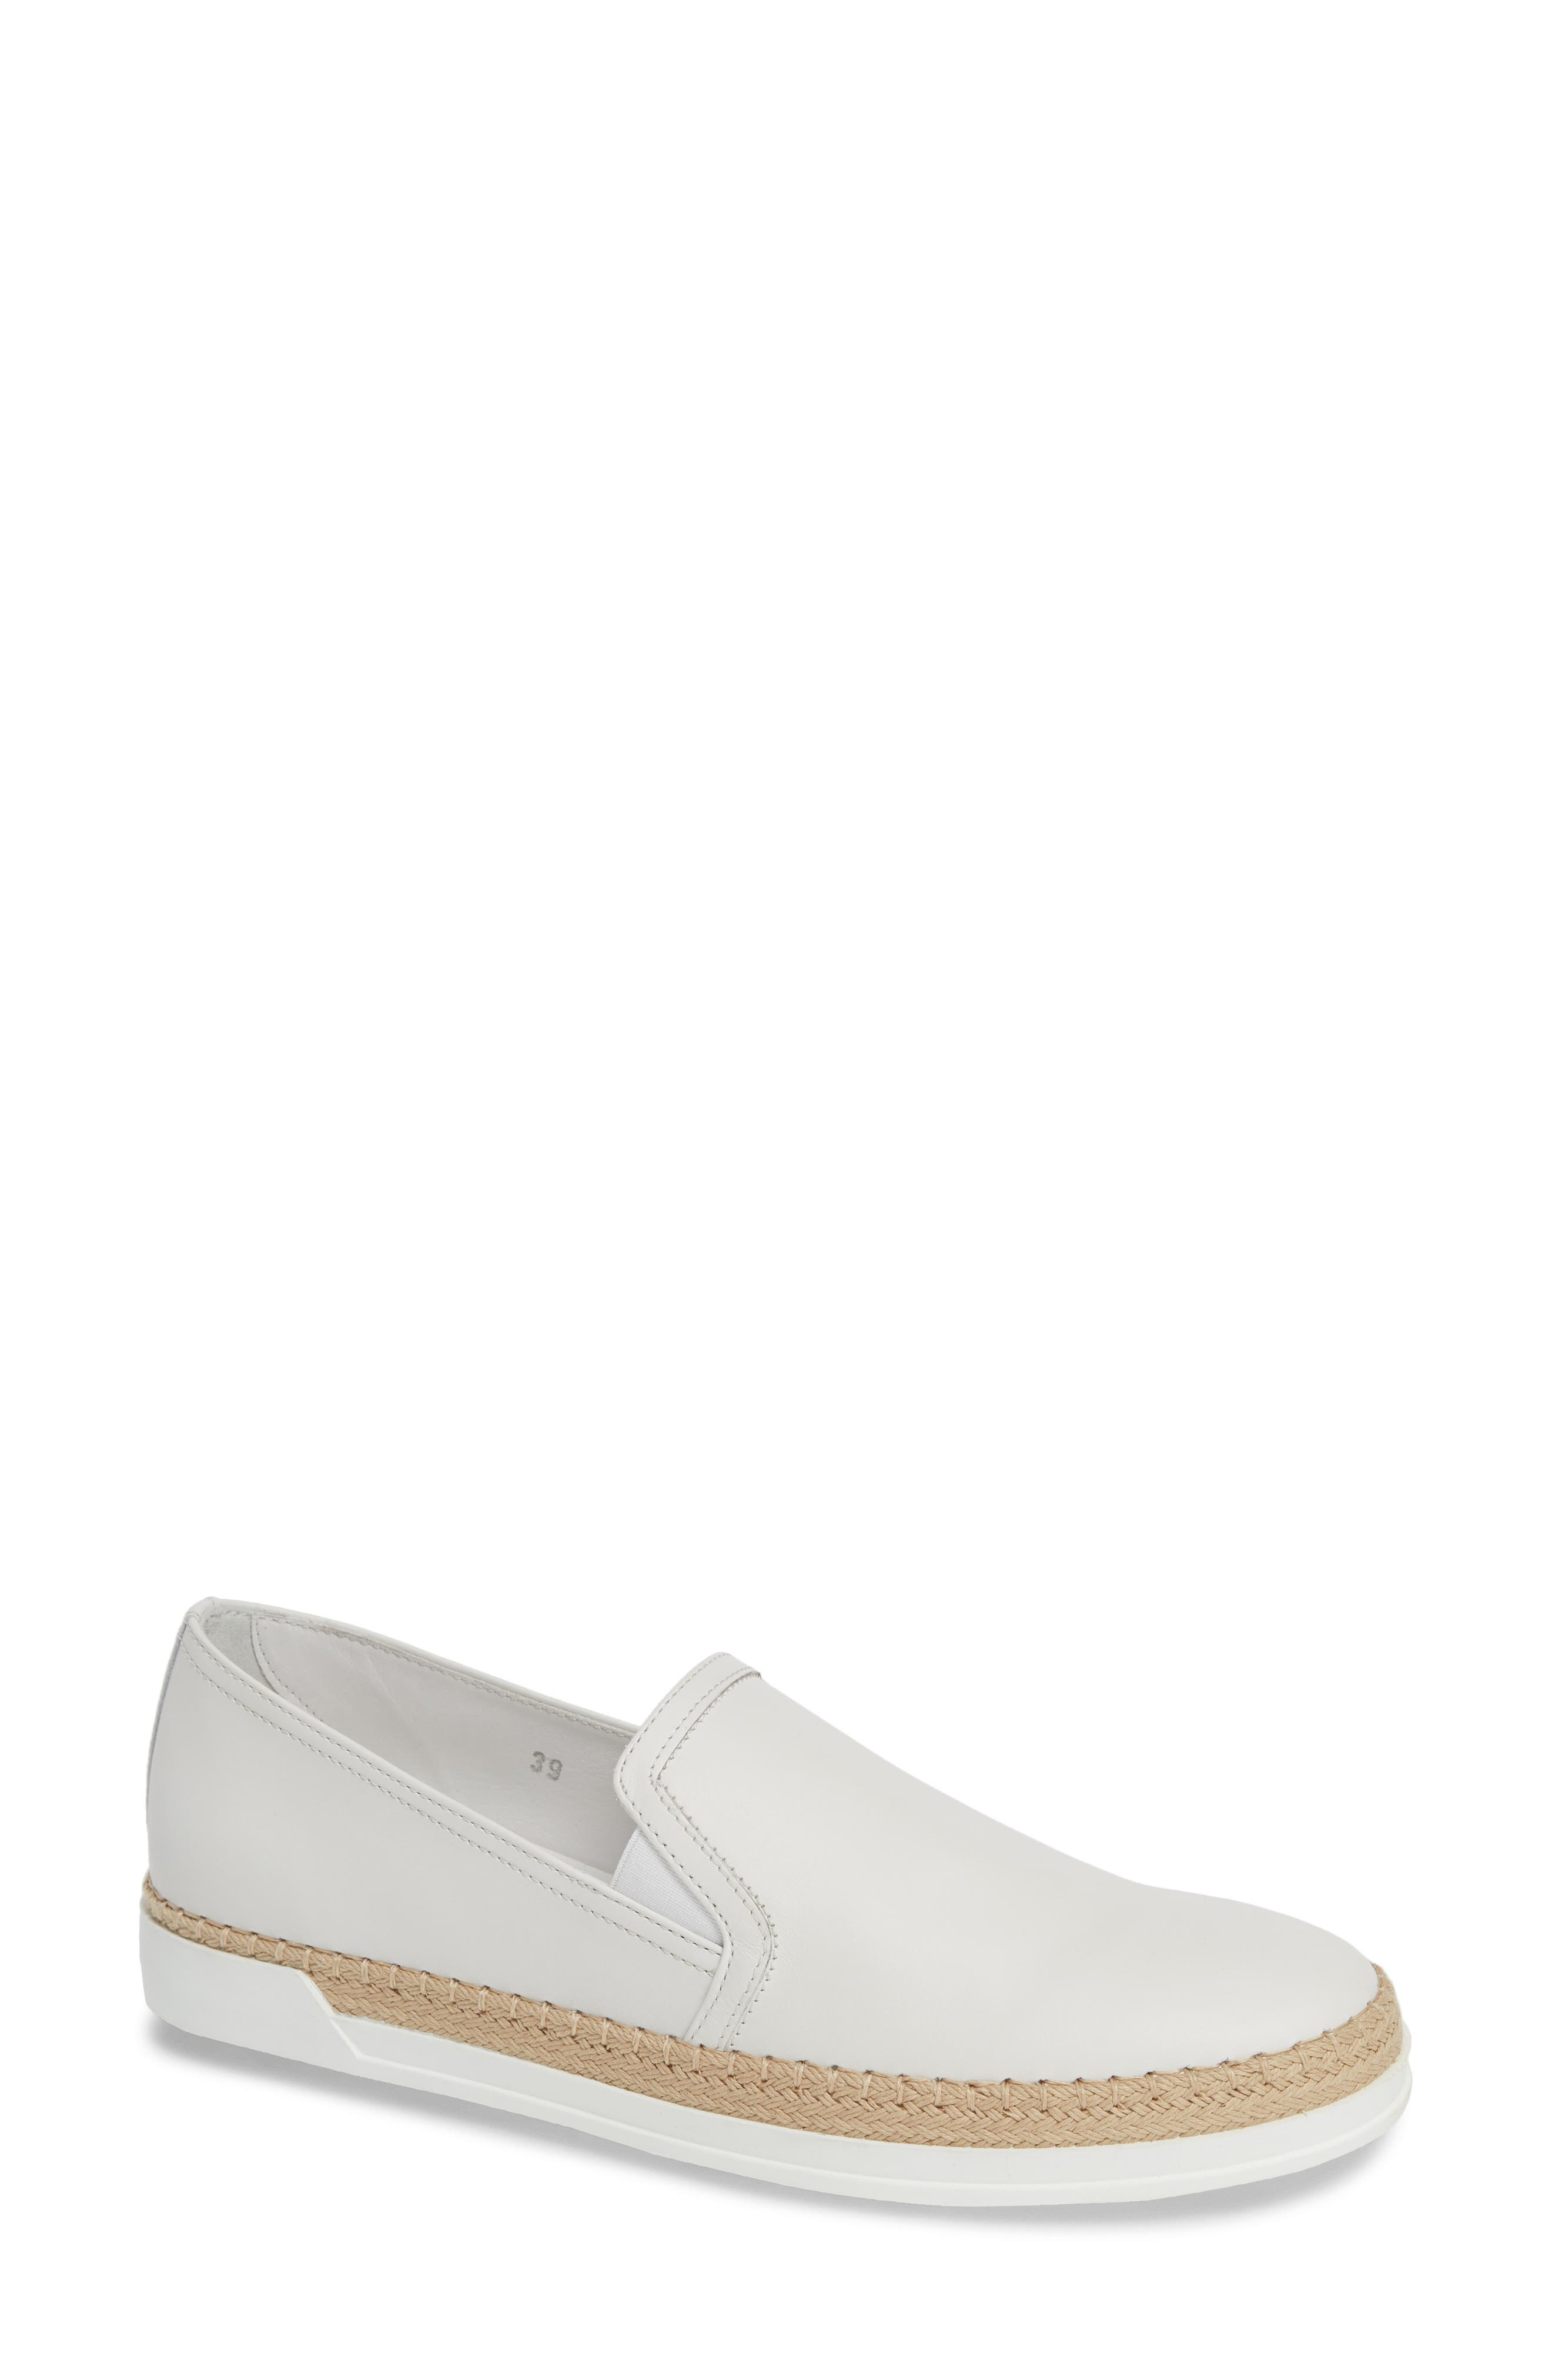 TOD'S Espadrille Slip-On Sneaker, Main, color, WHITE LEATHER